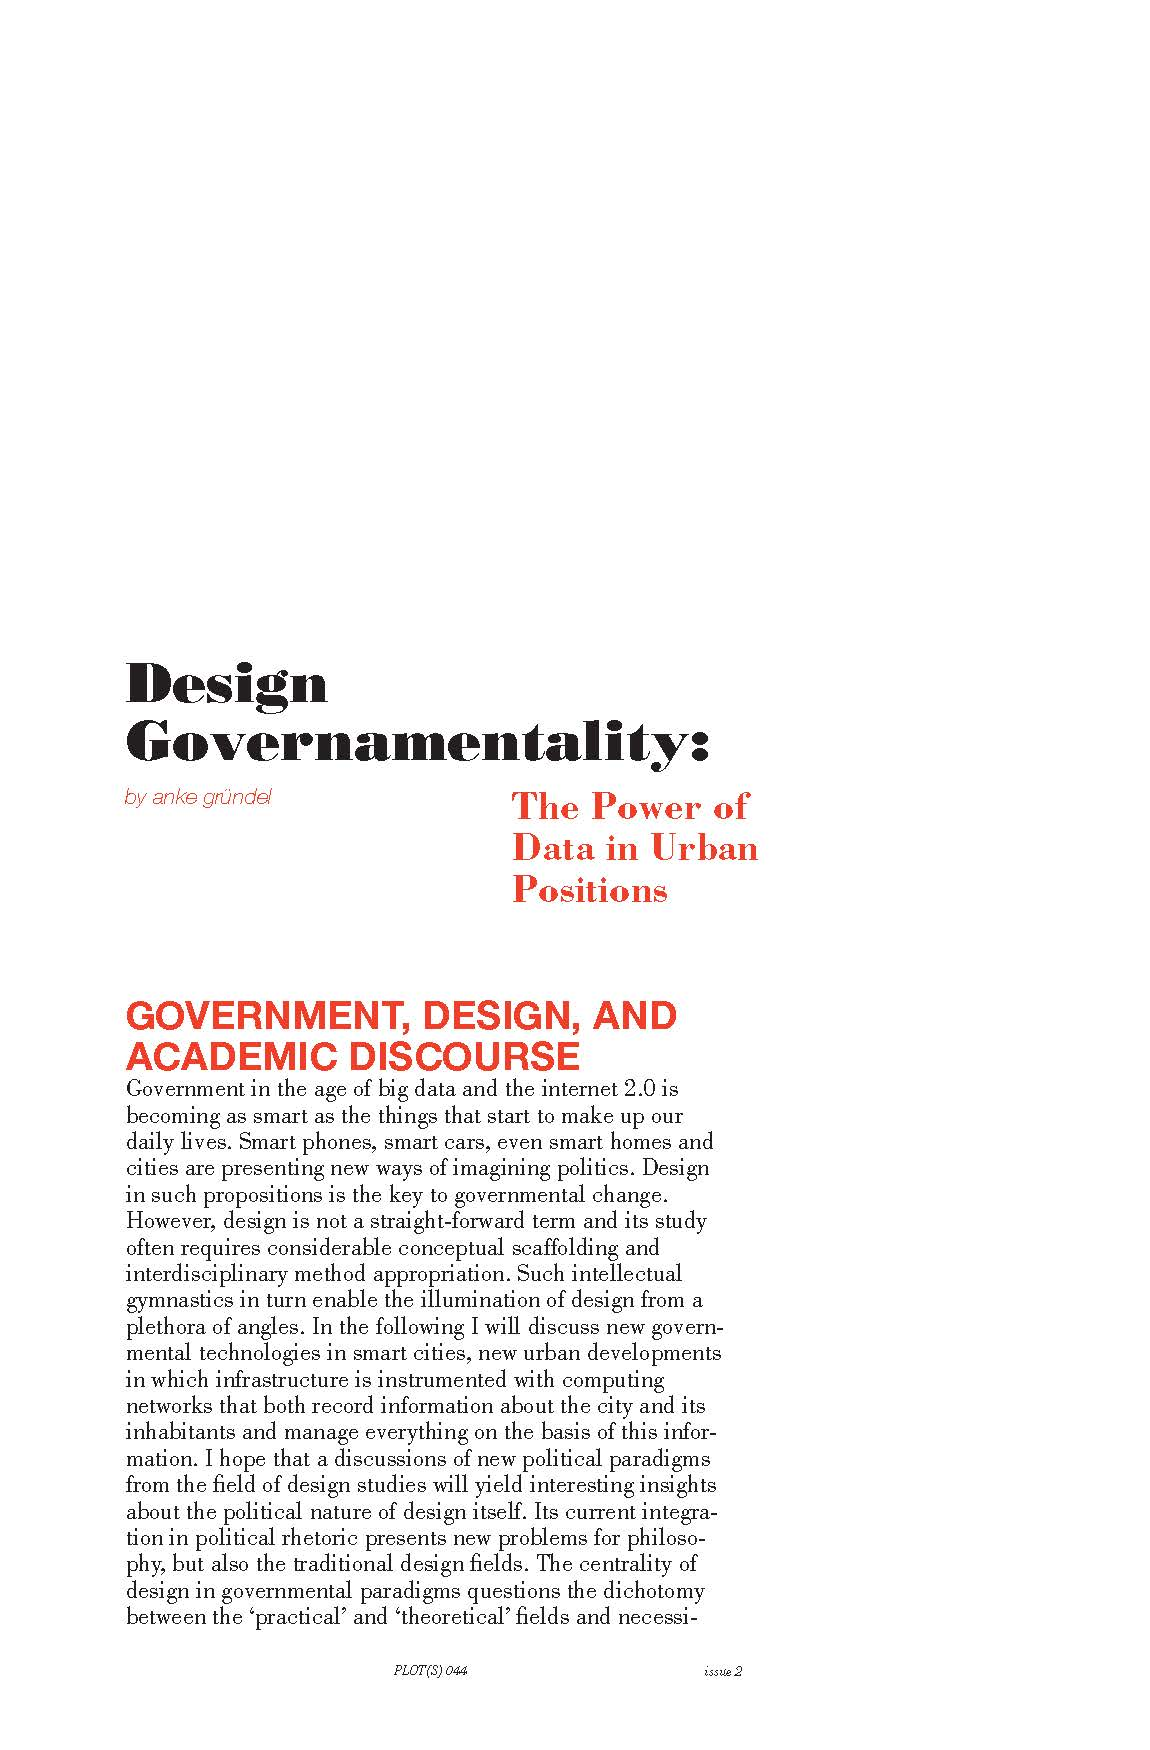 Design Governamentality The Power of Data in Urban Positions_Page_01